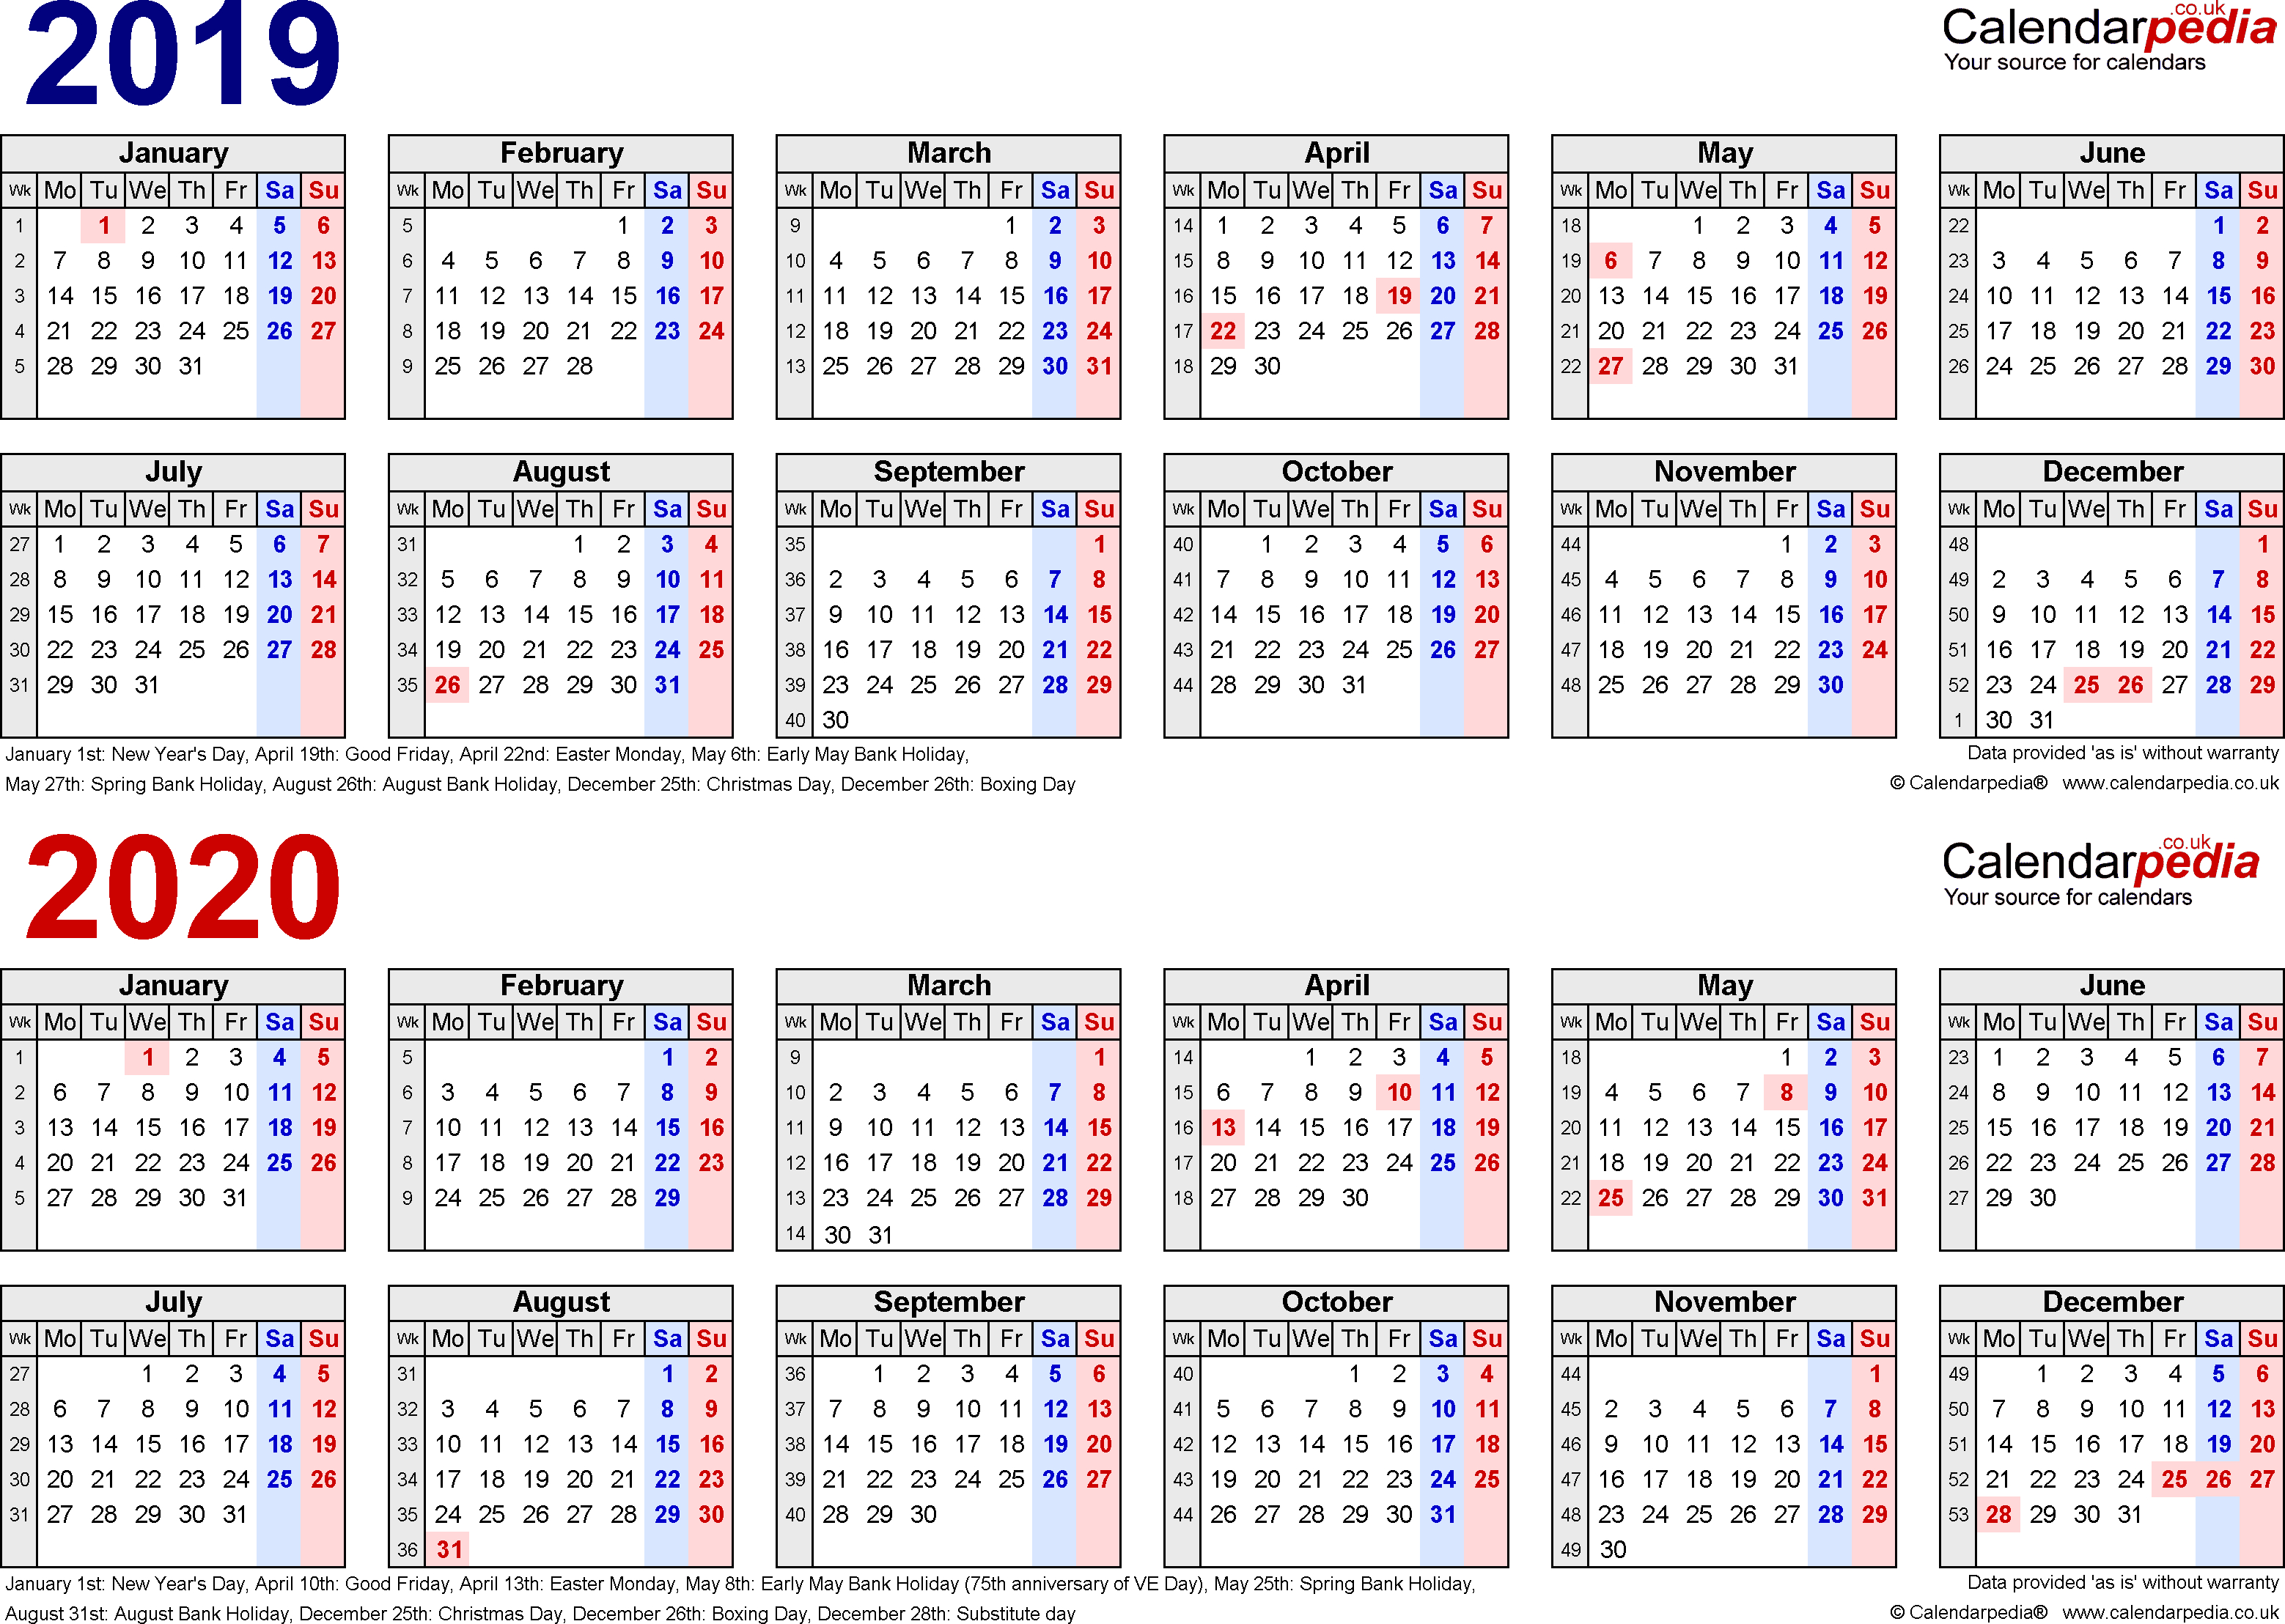 Two Year Calendars For 2019 & 2020 (Uk) For Pdf with Pocket Printable 2019-2020 Calendar Free